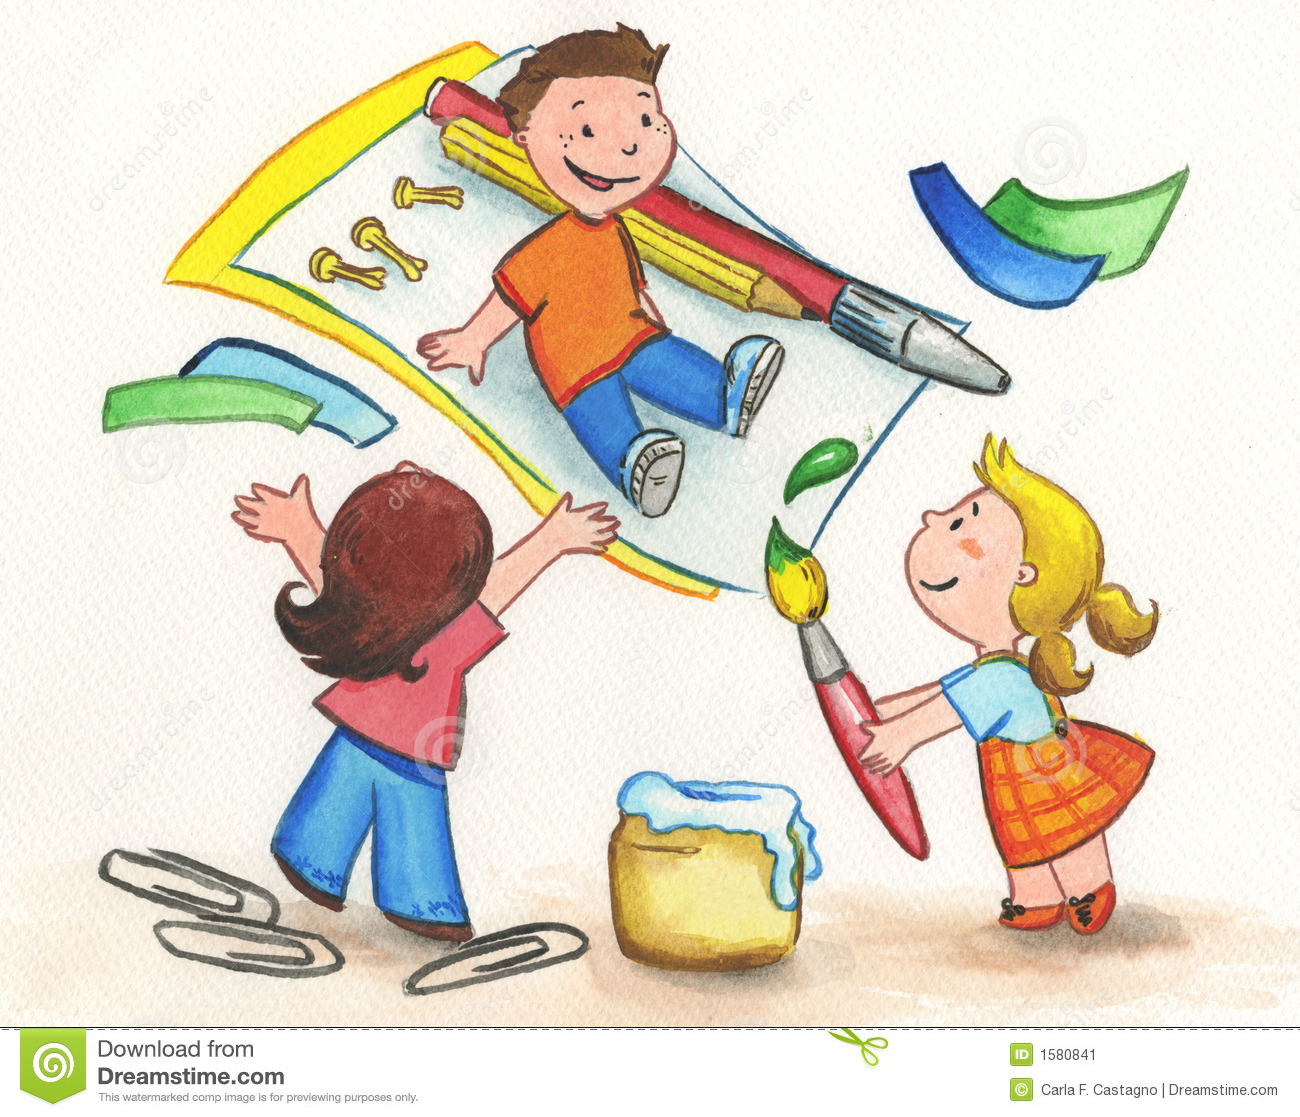 Kids painting stock illustration. Illustration of children - 1580841